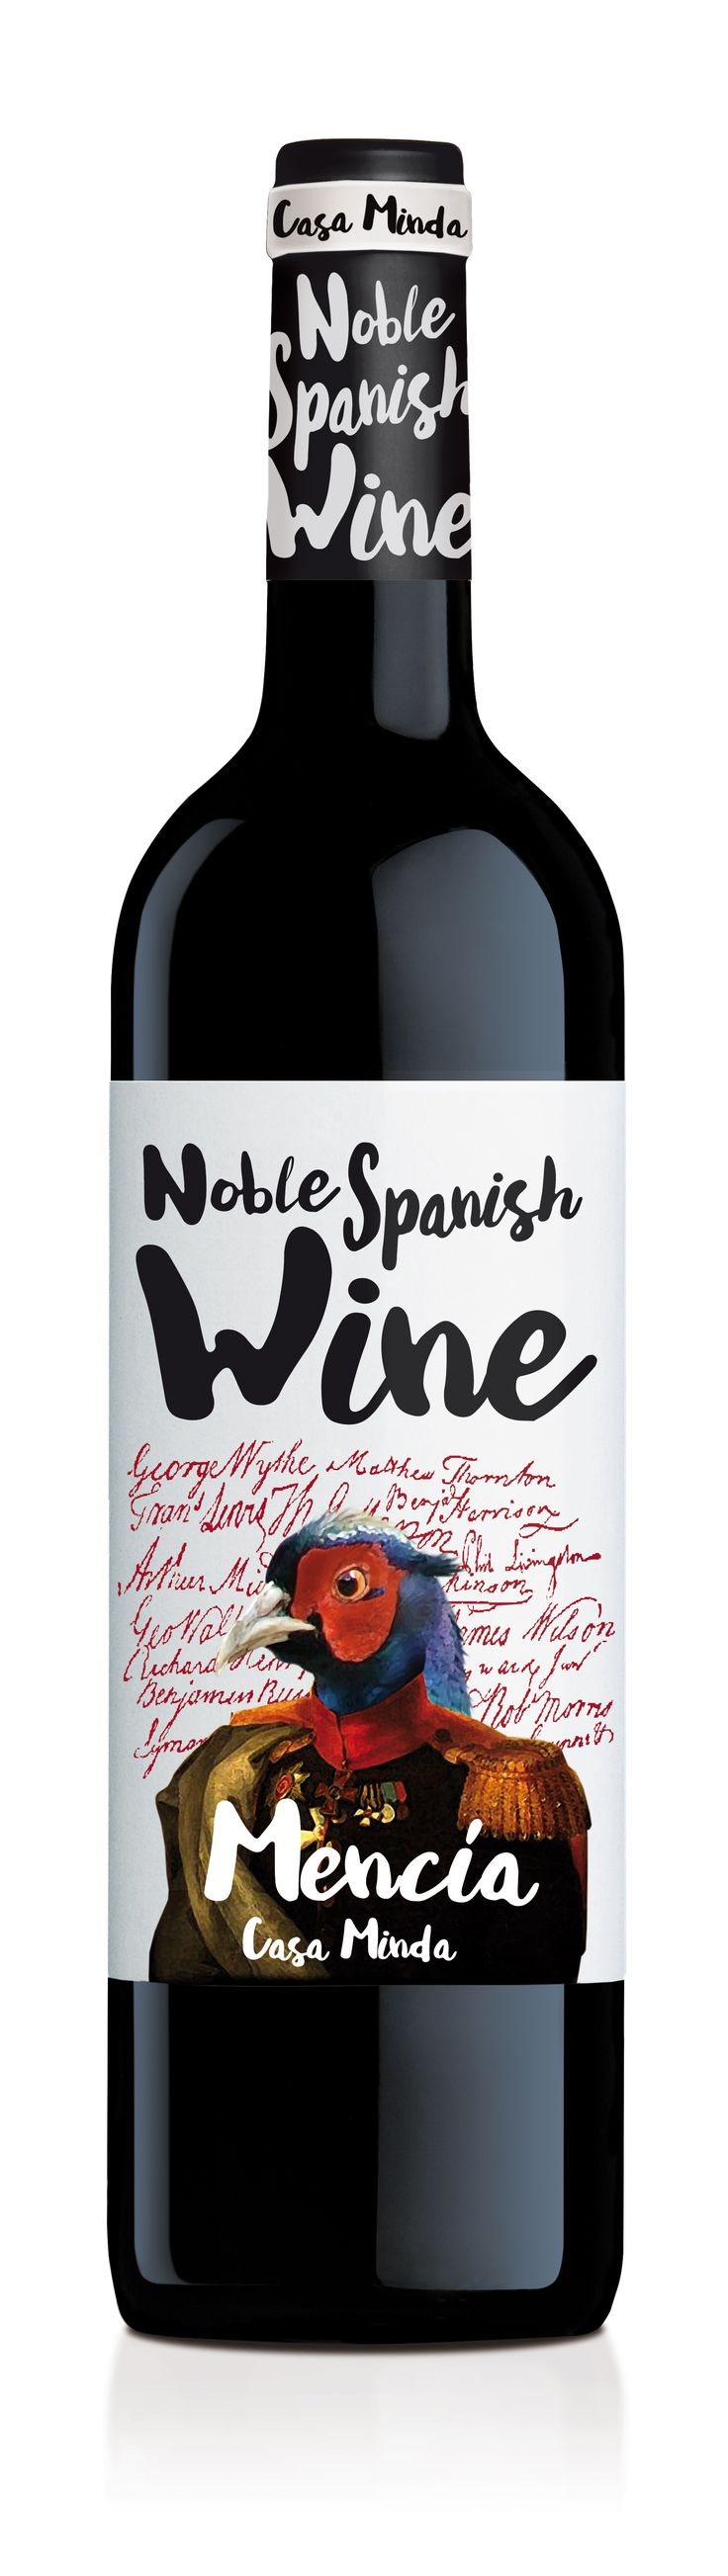 Mencía • Noble Spanish Wine